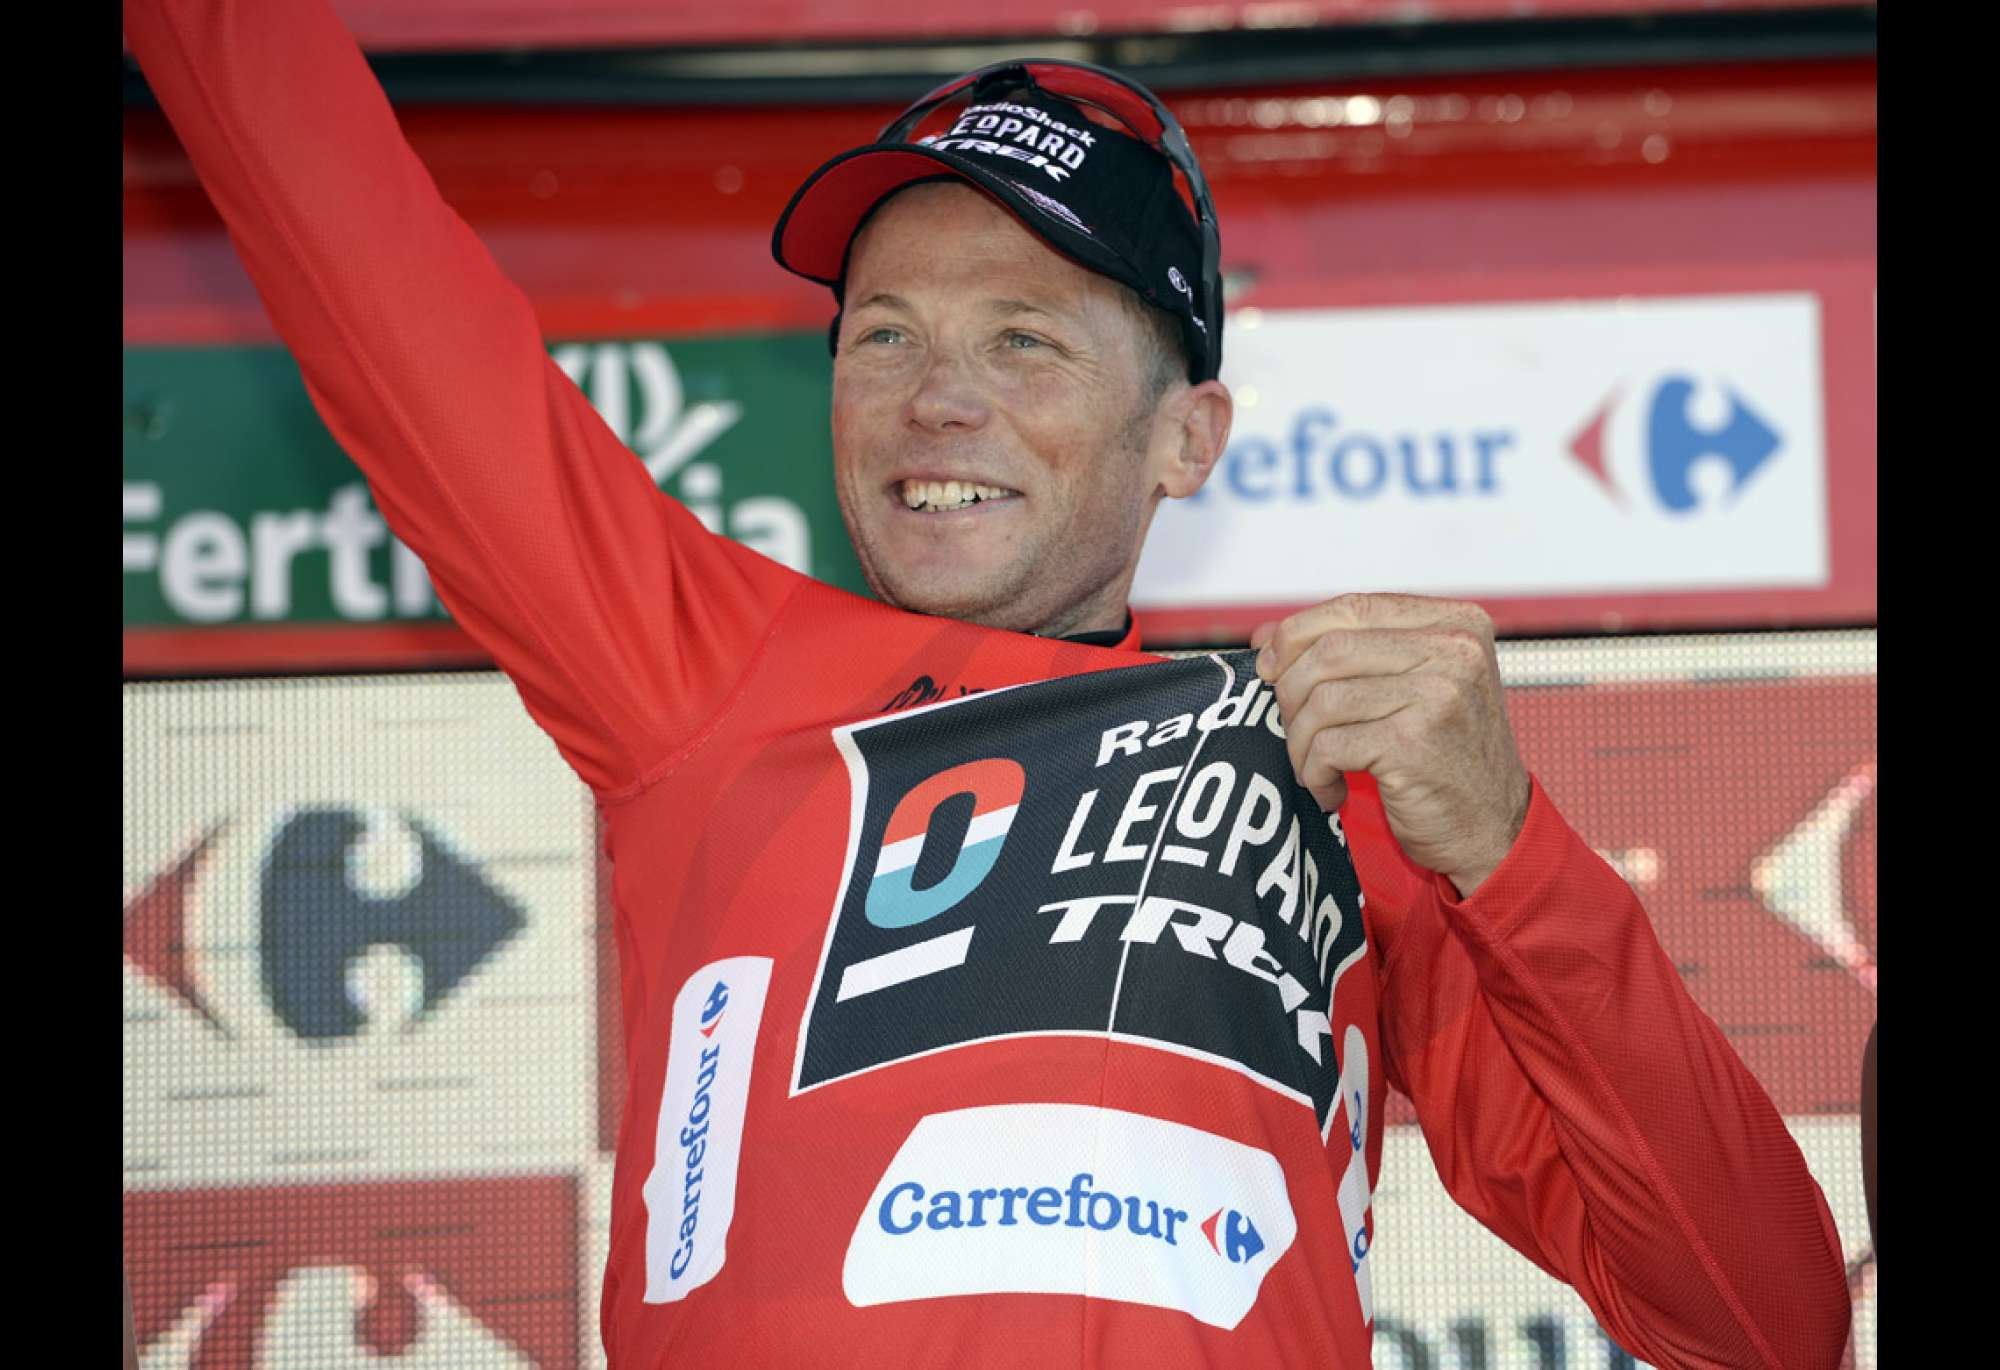 Chris Horner Signs With Airgas-Safeway